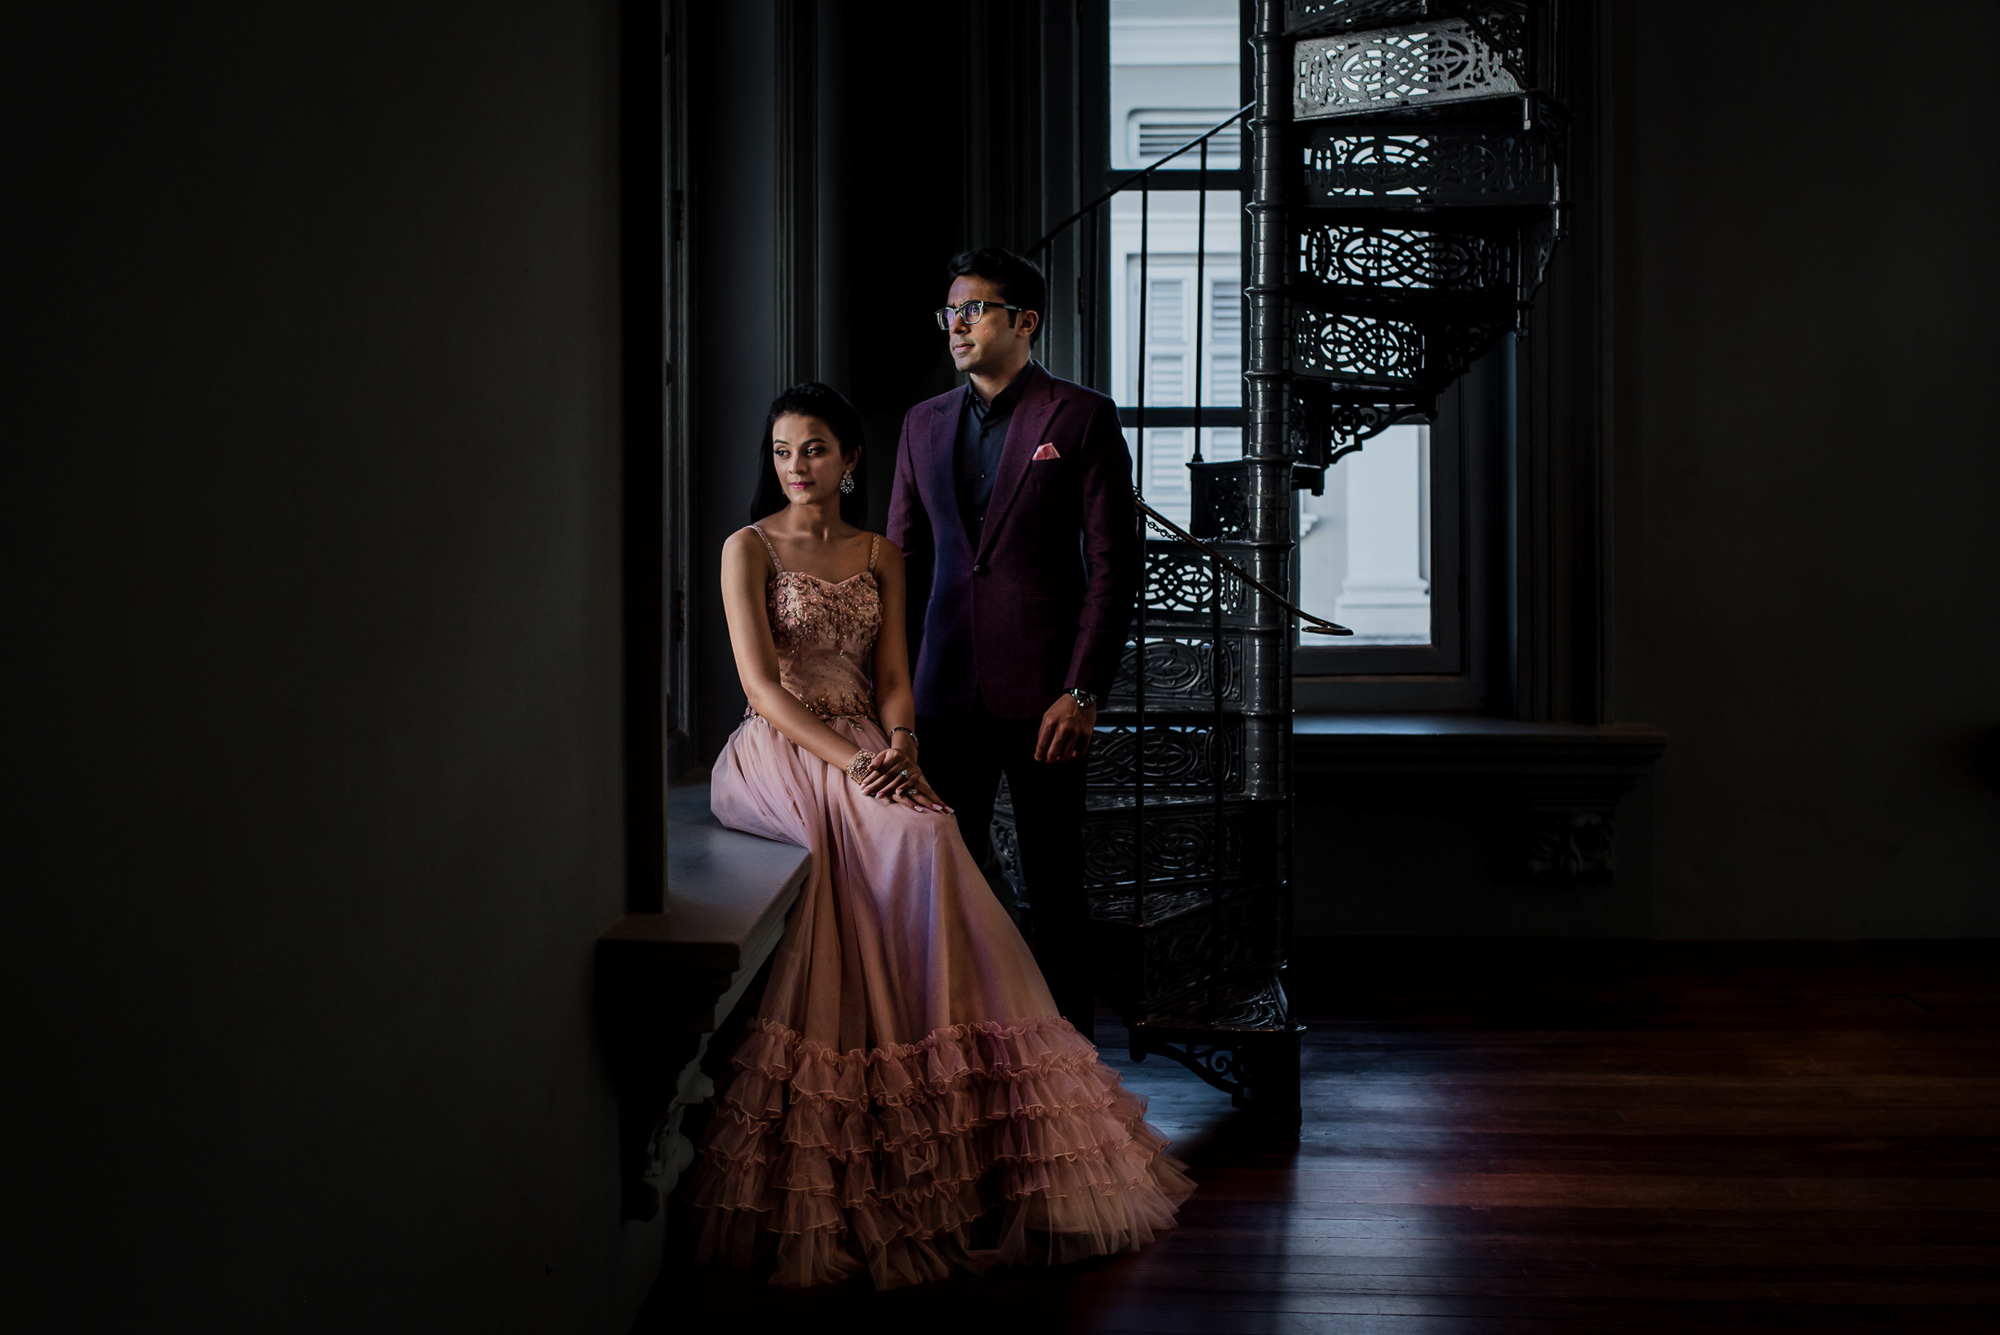 Bride in pink gown and groom in plum suit by window image by Rimi Sen